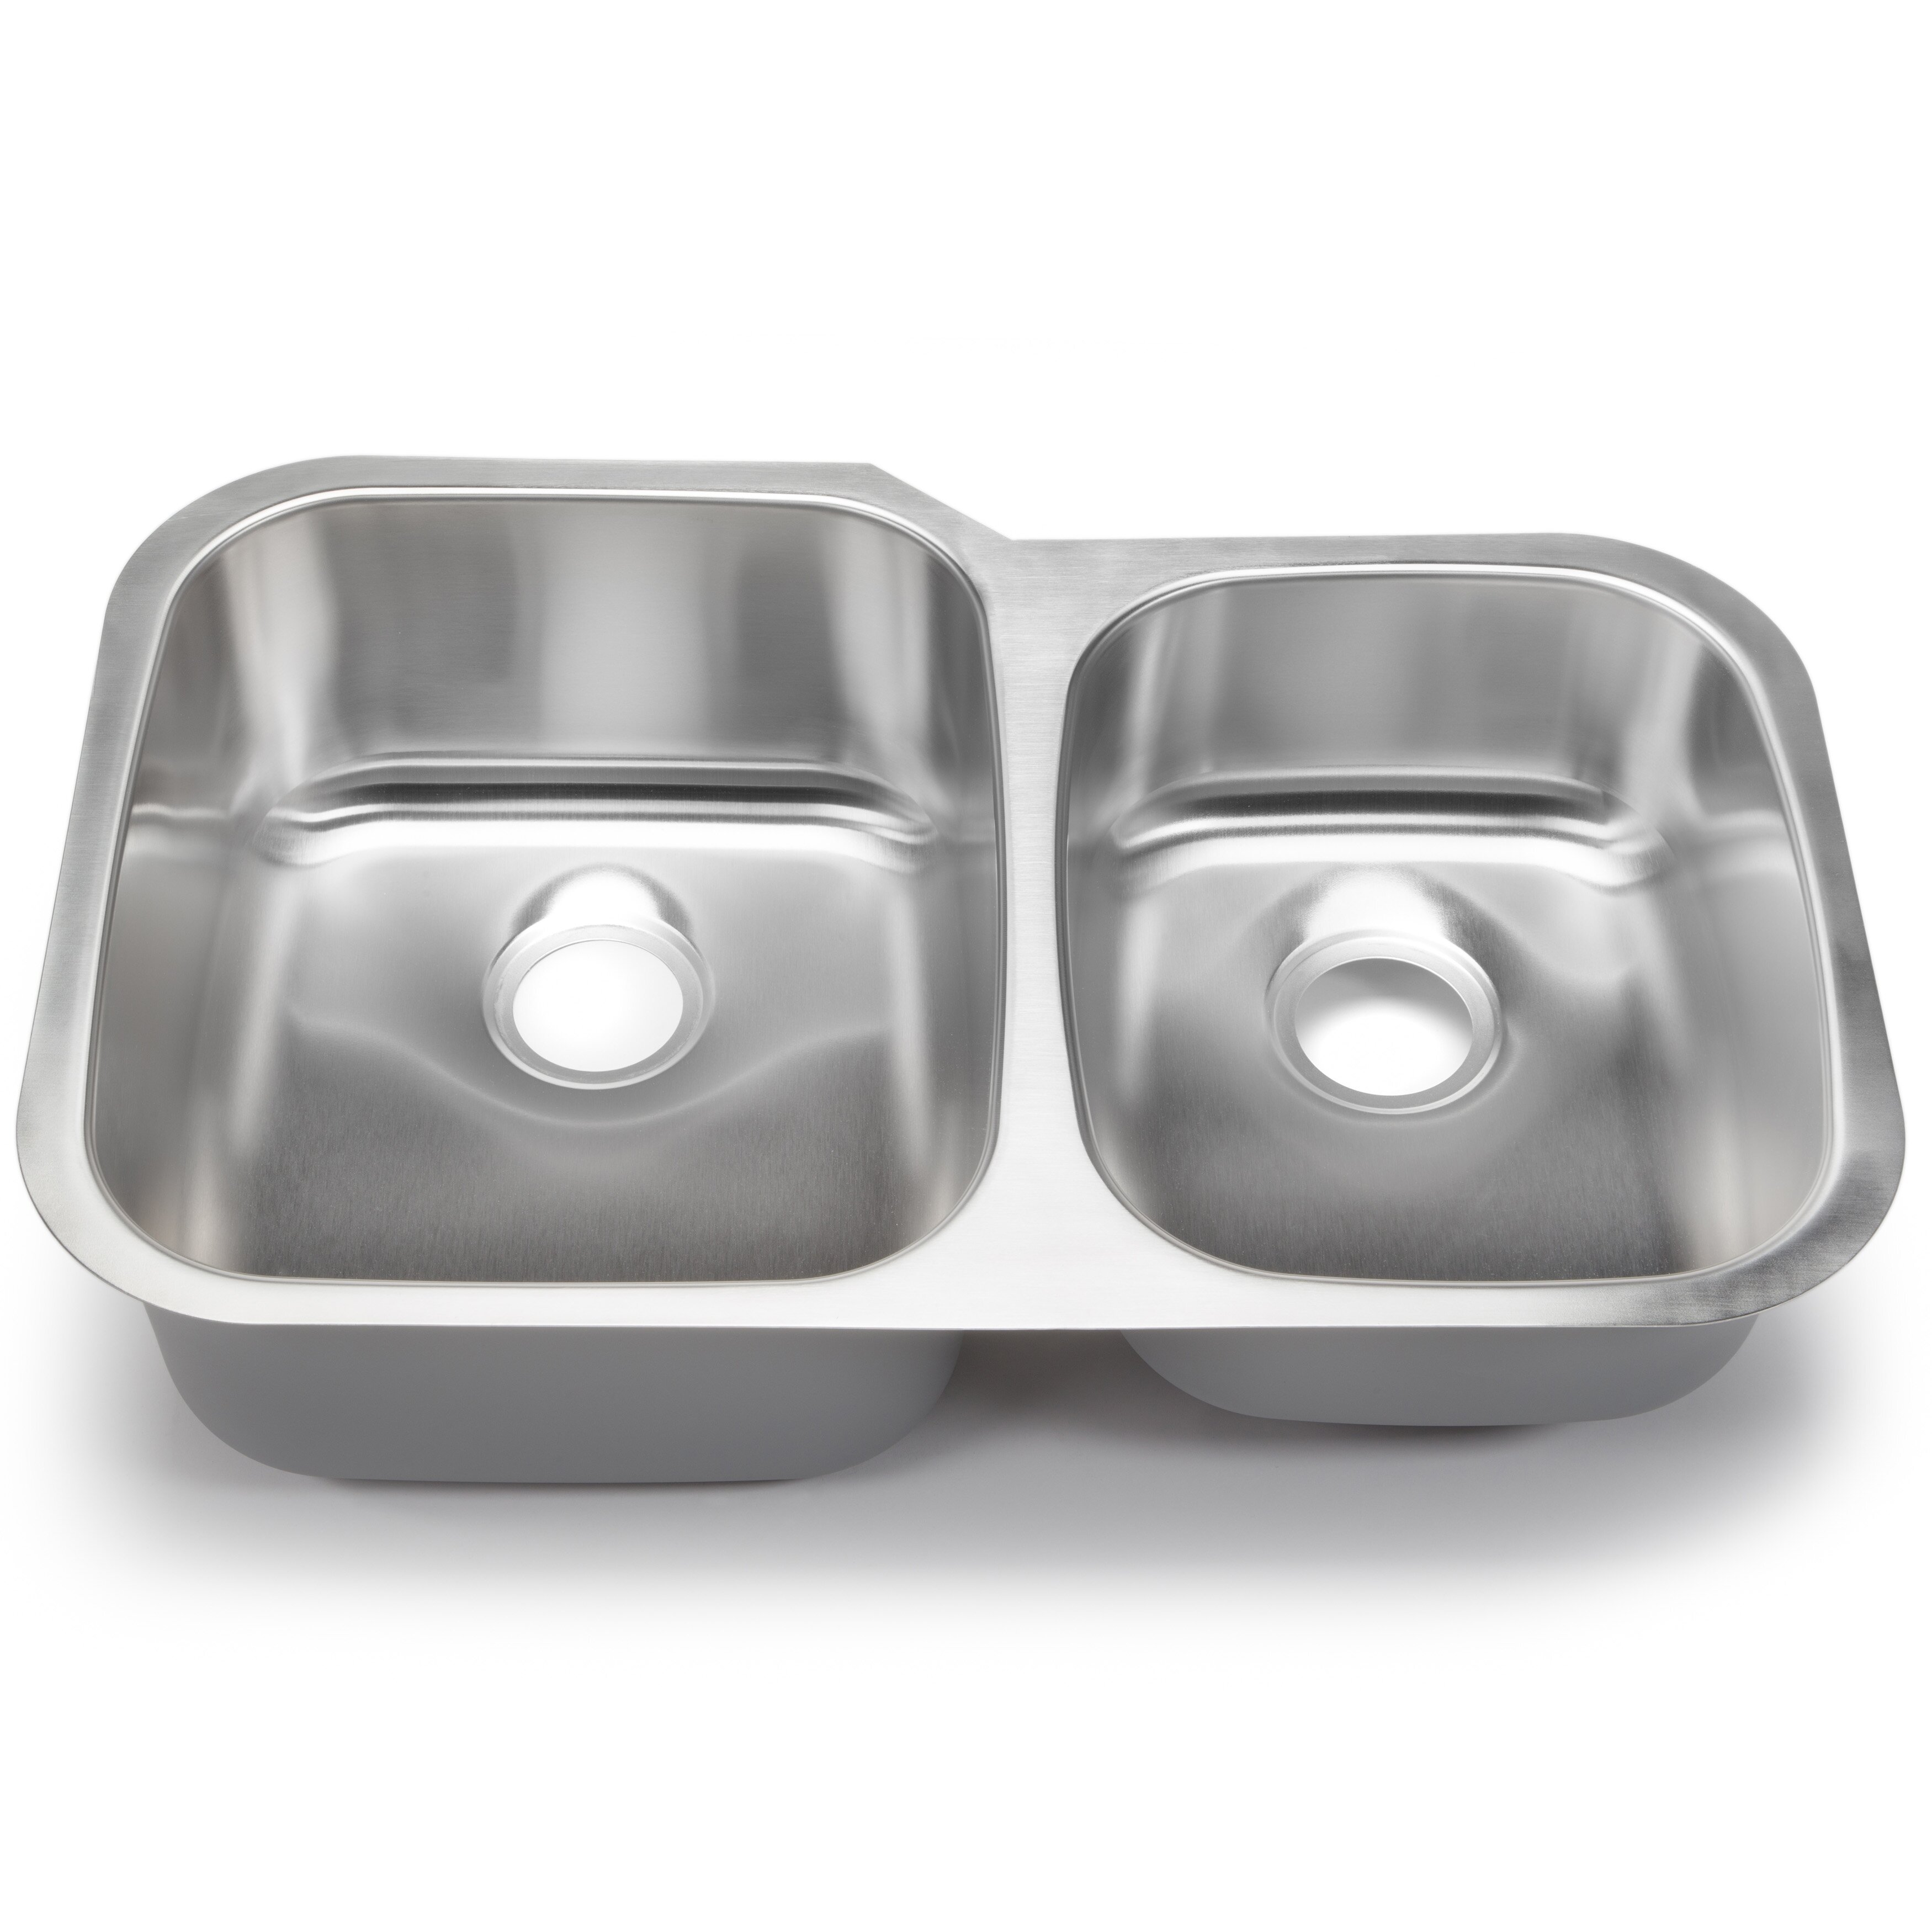 White Kitchen Sink Undermount Hahn Classic Chef 32 X 2063 Double Bowl Undermount Kitchen Sink